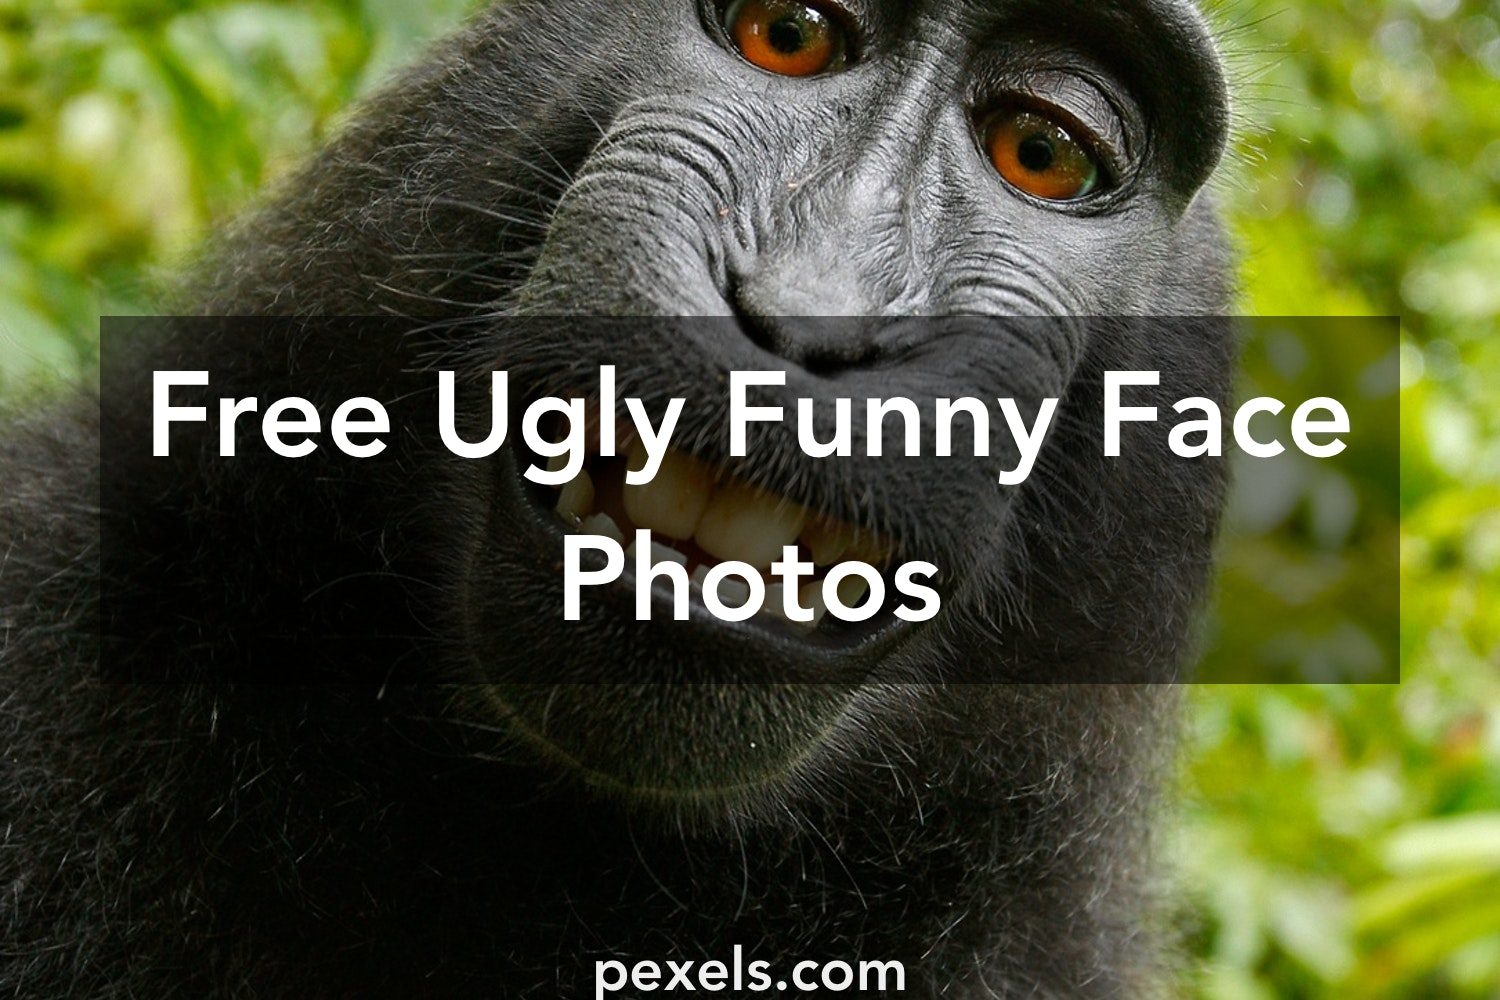 Free stock photos of ugly funny face pexels - Ugly face wallpaper ...